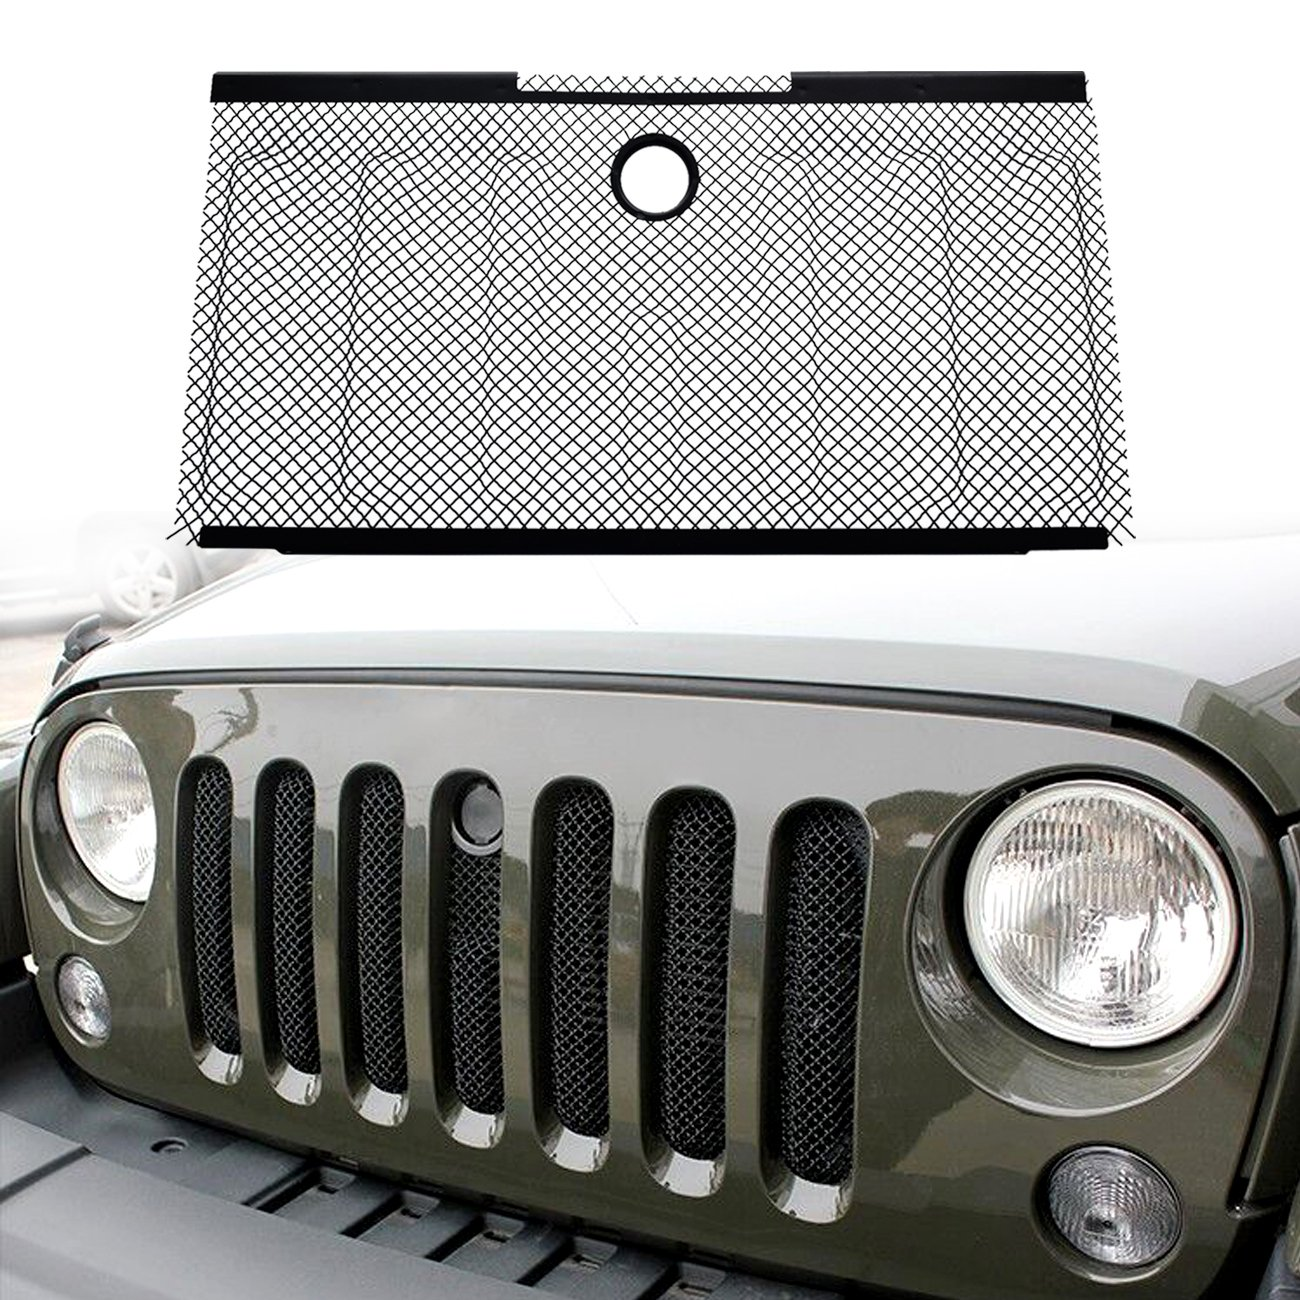 DIYTUNINGS Front Mesh Grille Grill Grid Inserts Bug Screen with Key Hood Lock for Jeep Wrangler JK JKU Unlimited Rubicon Sahara X Off Road Sport Exterior Accessories Parts 2007-2015